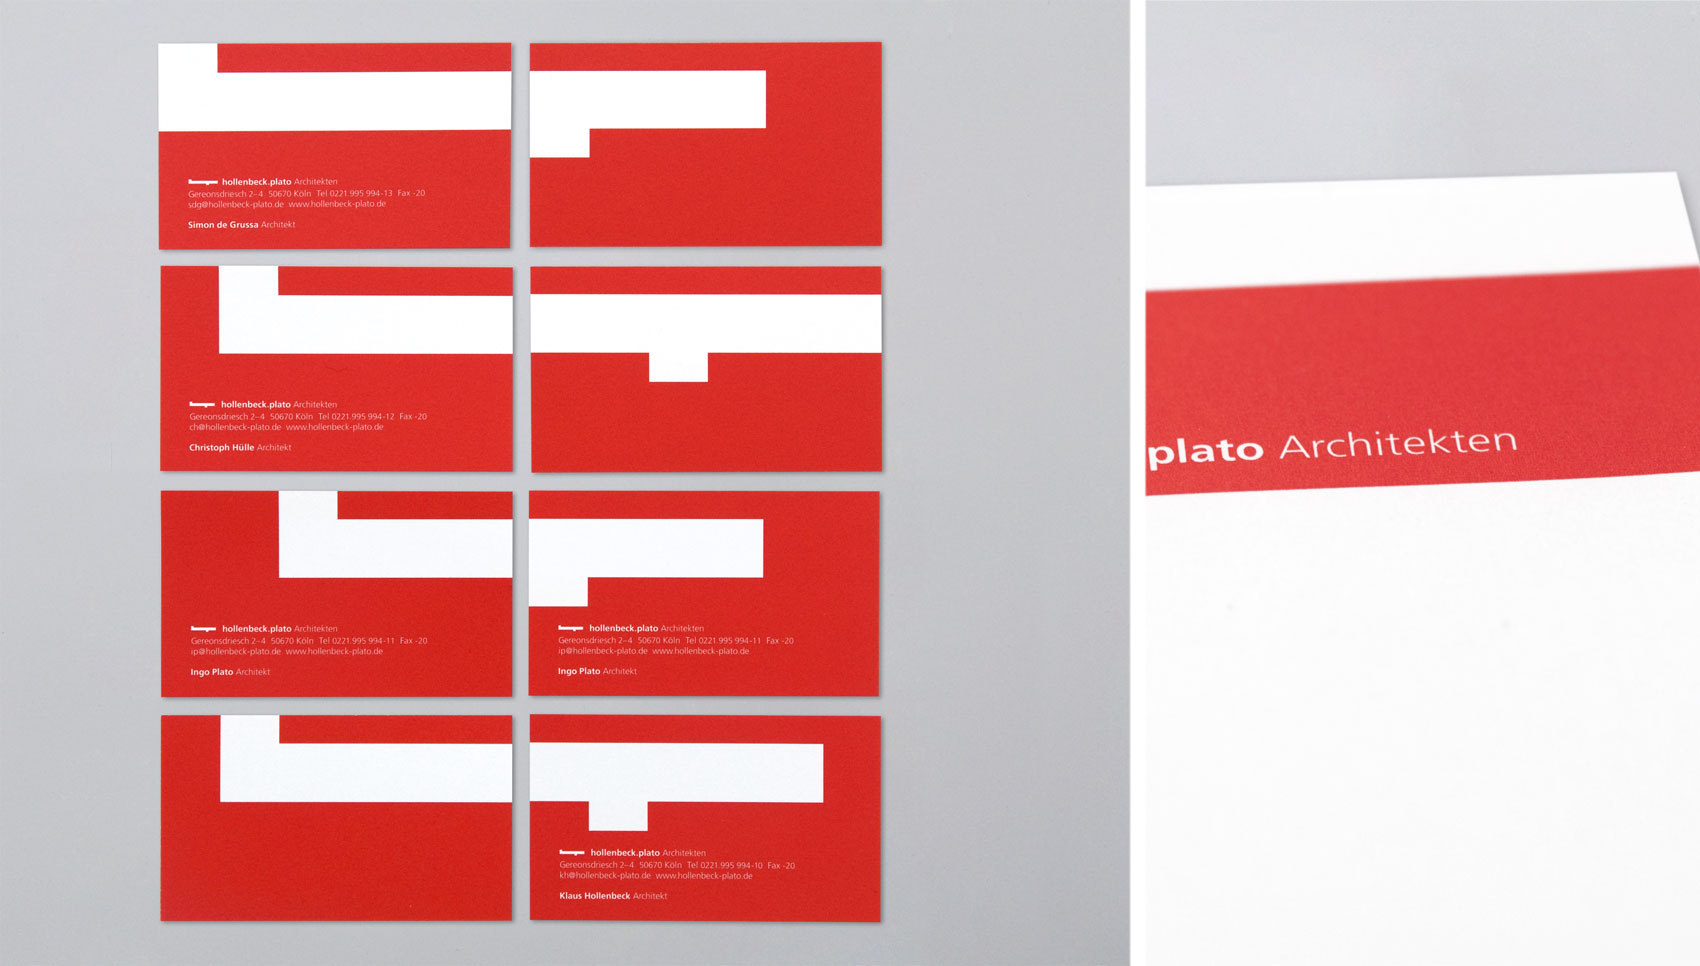 hollenbeck.plato Corporate Design